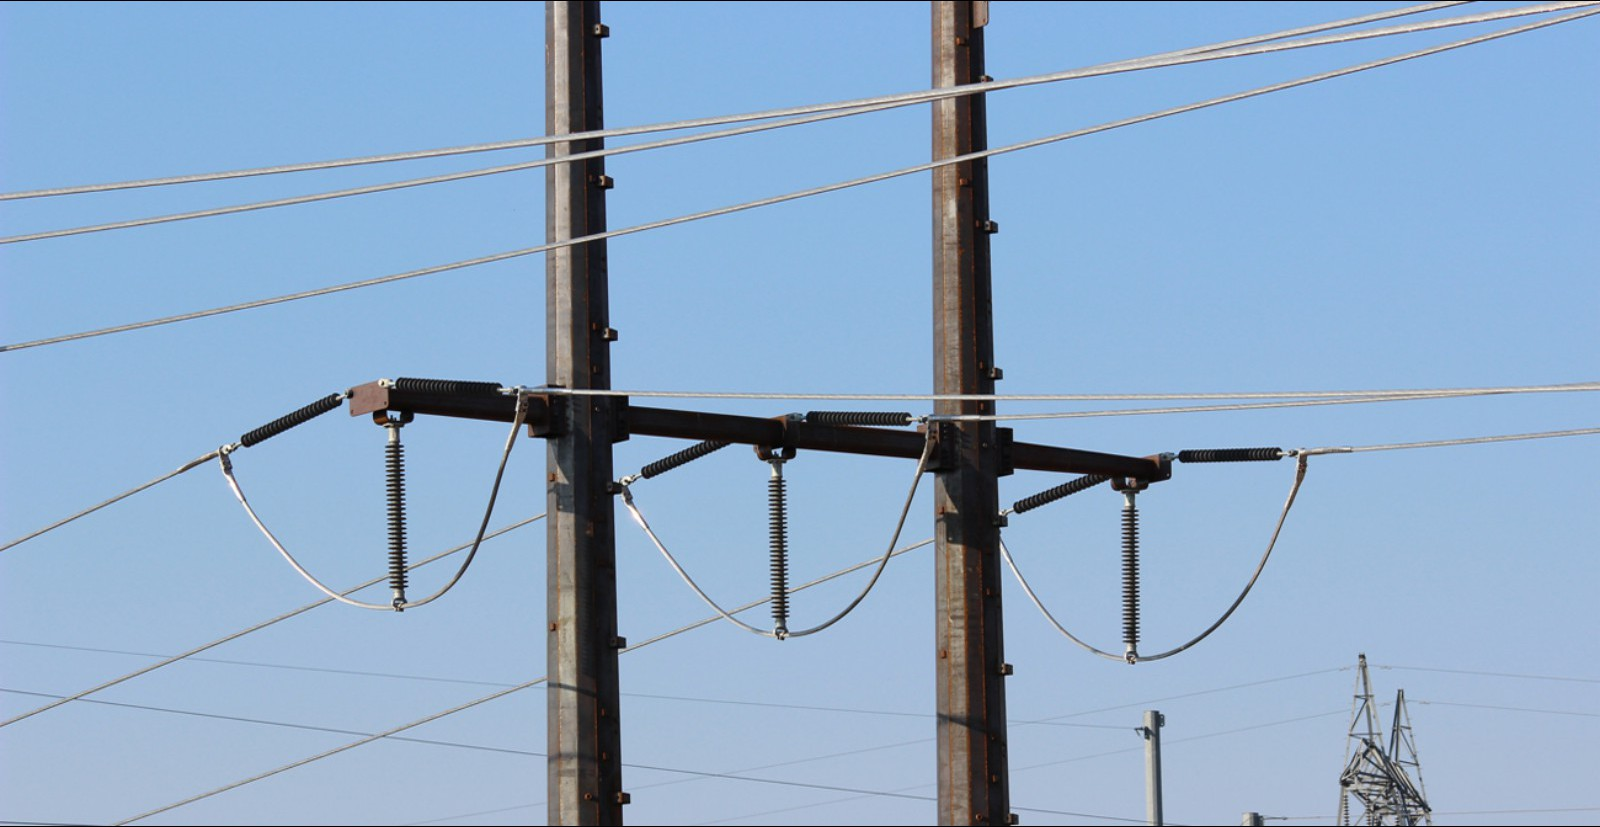 H Frame Transmission Power Pole : Western utility telecom inc